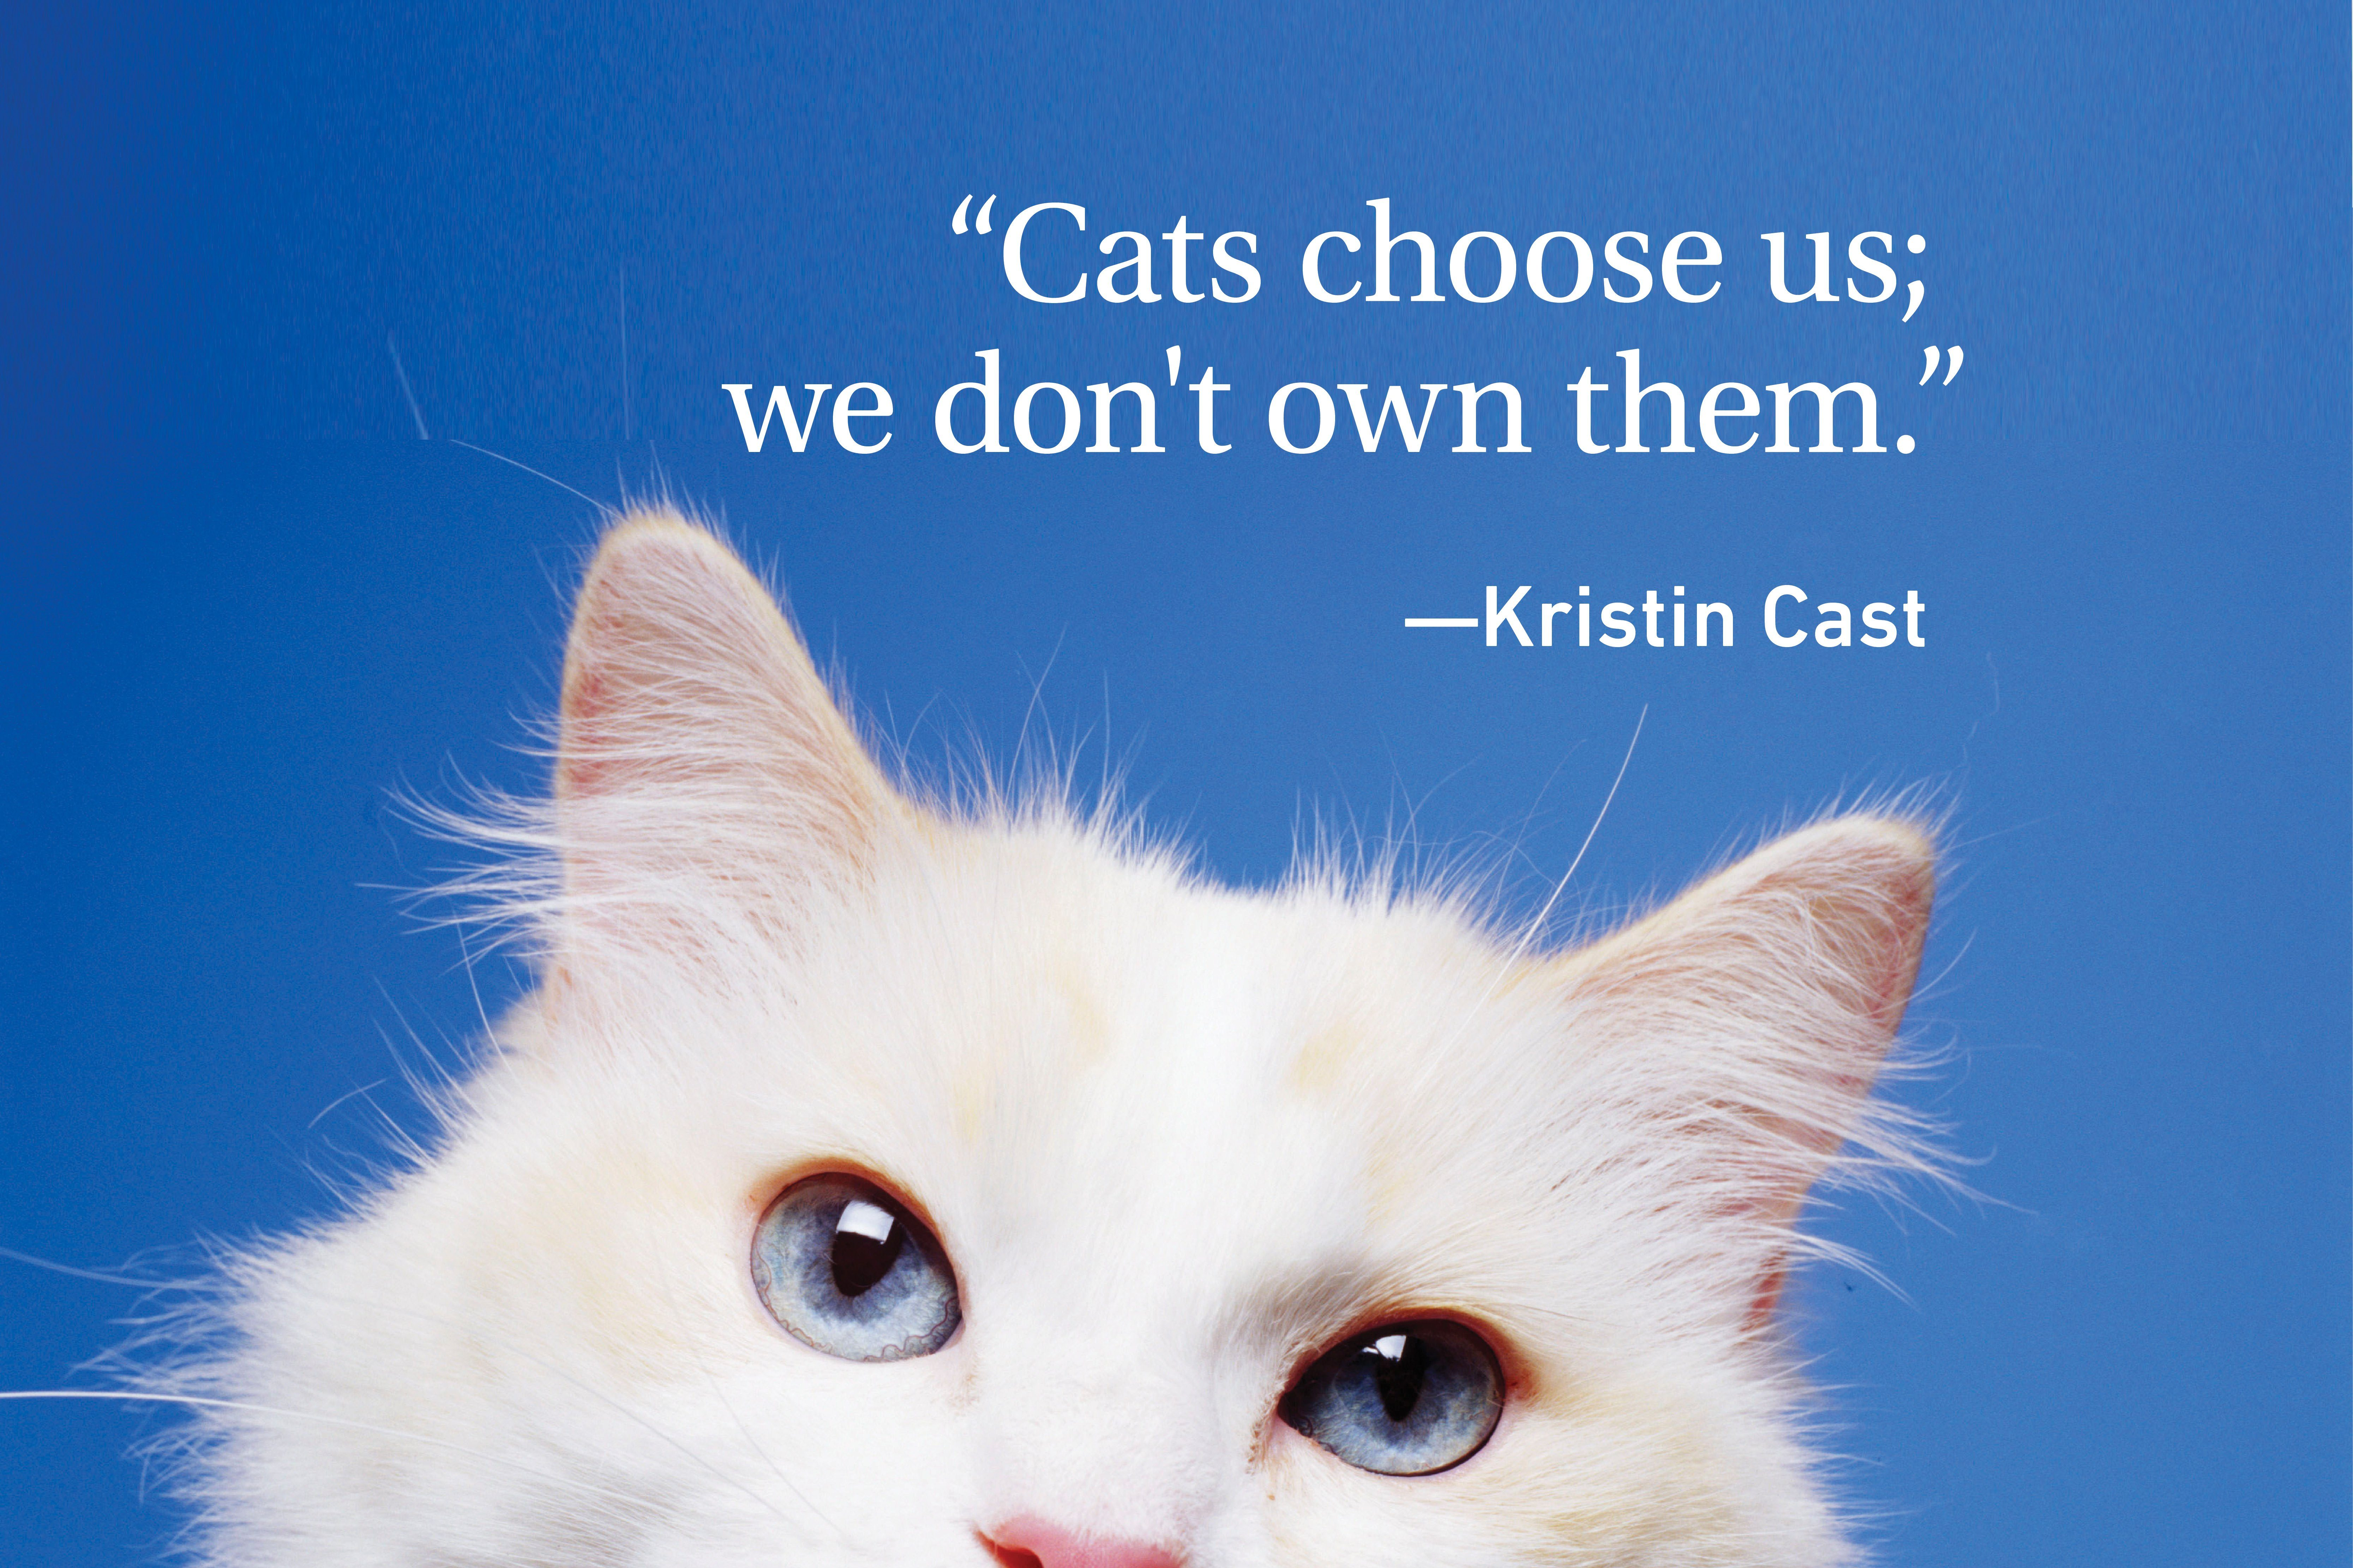 White cat on blue background with quote on cats